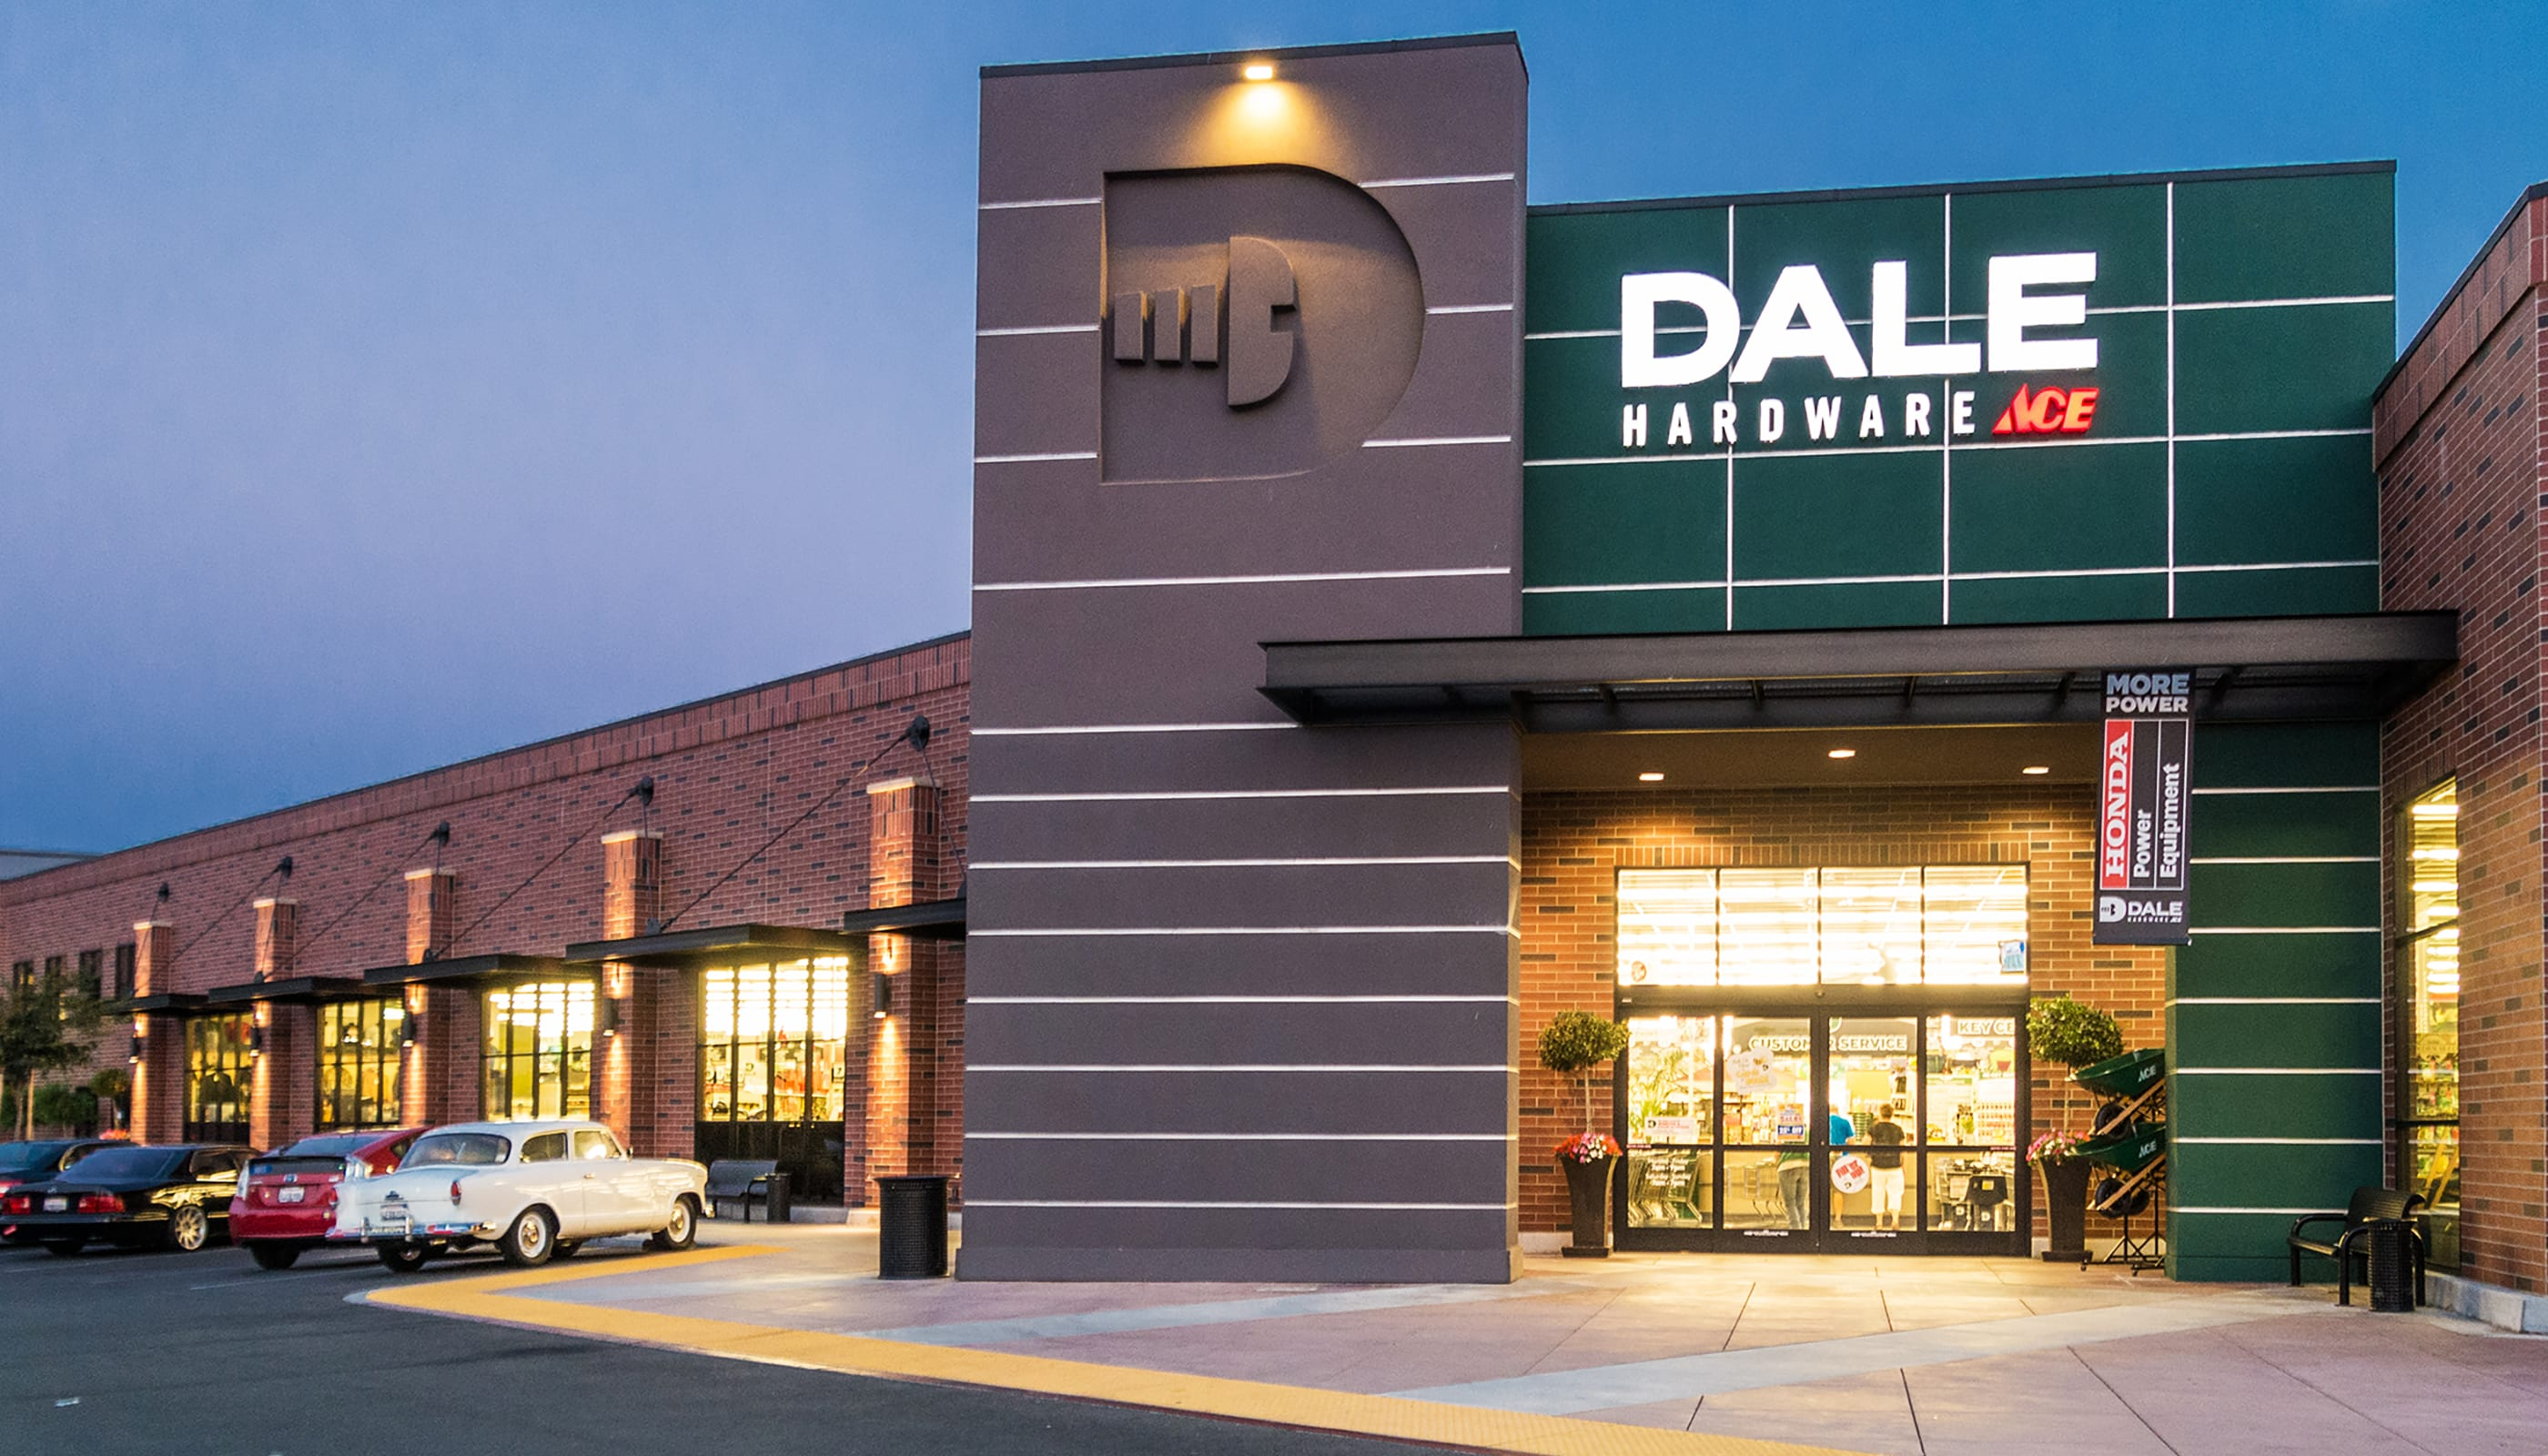 Dale Hardware - Commercial Architecture